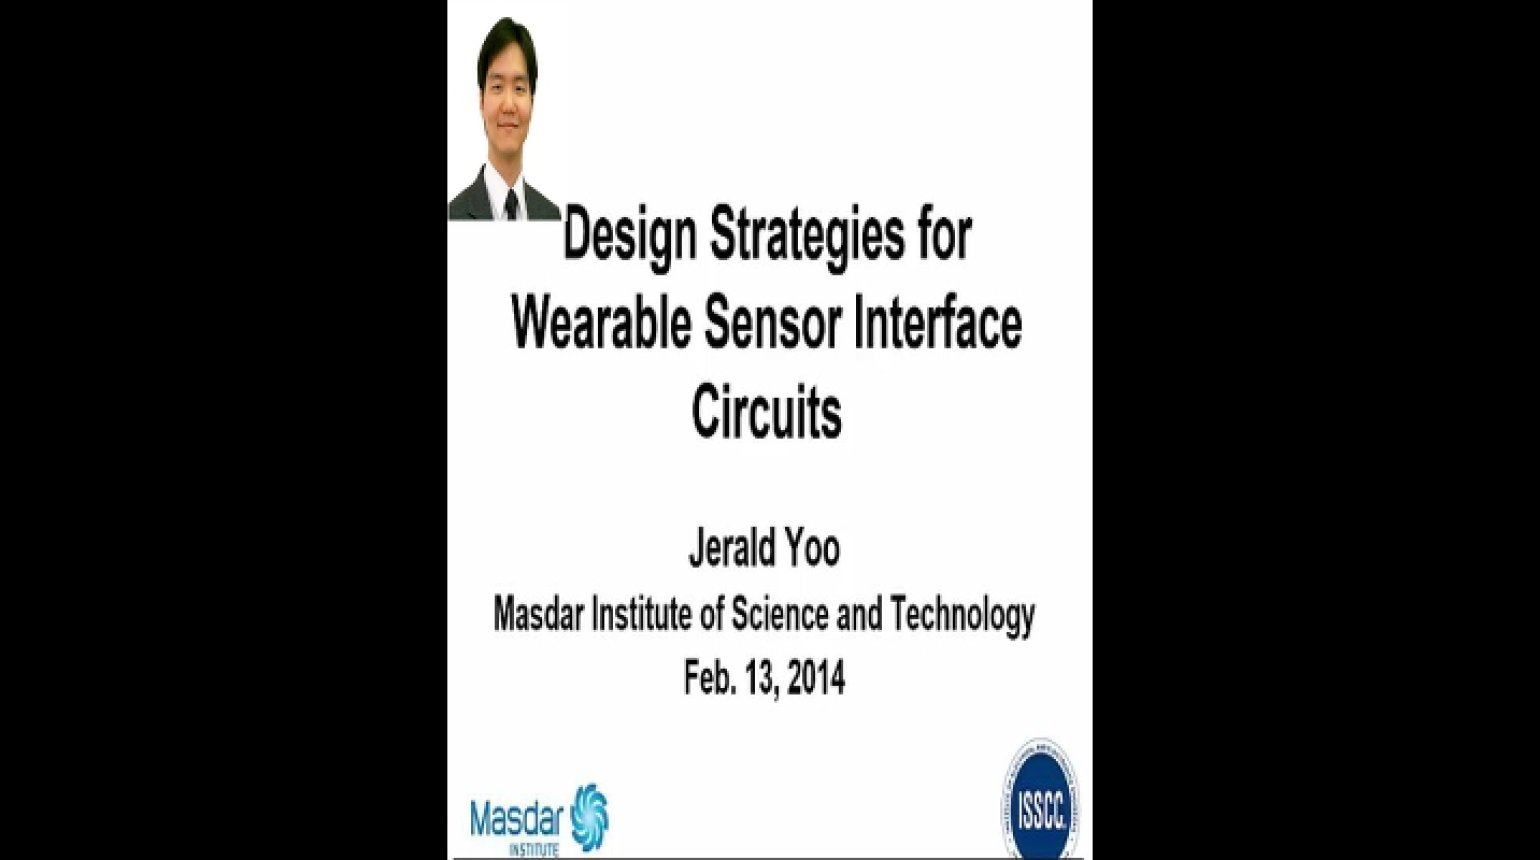 Design Strategies for Wearable Sensor Interface Circuits Video